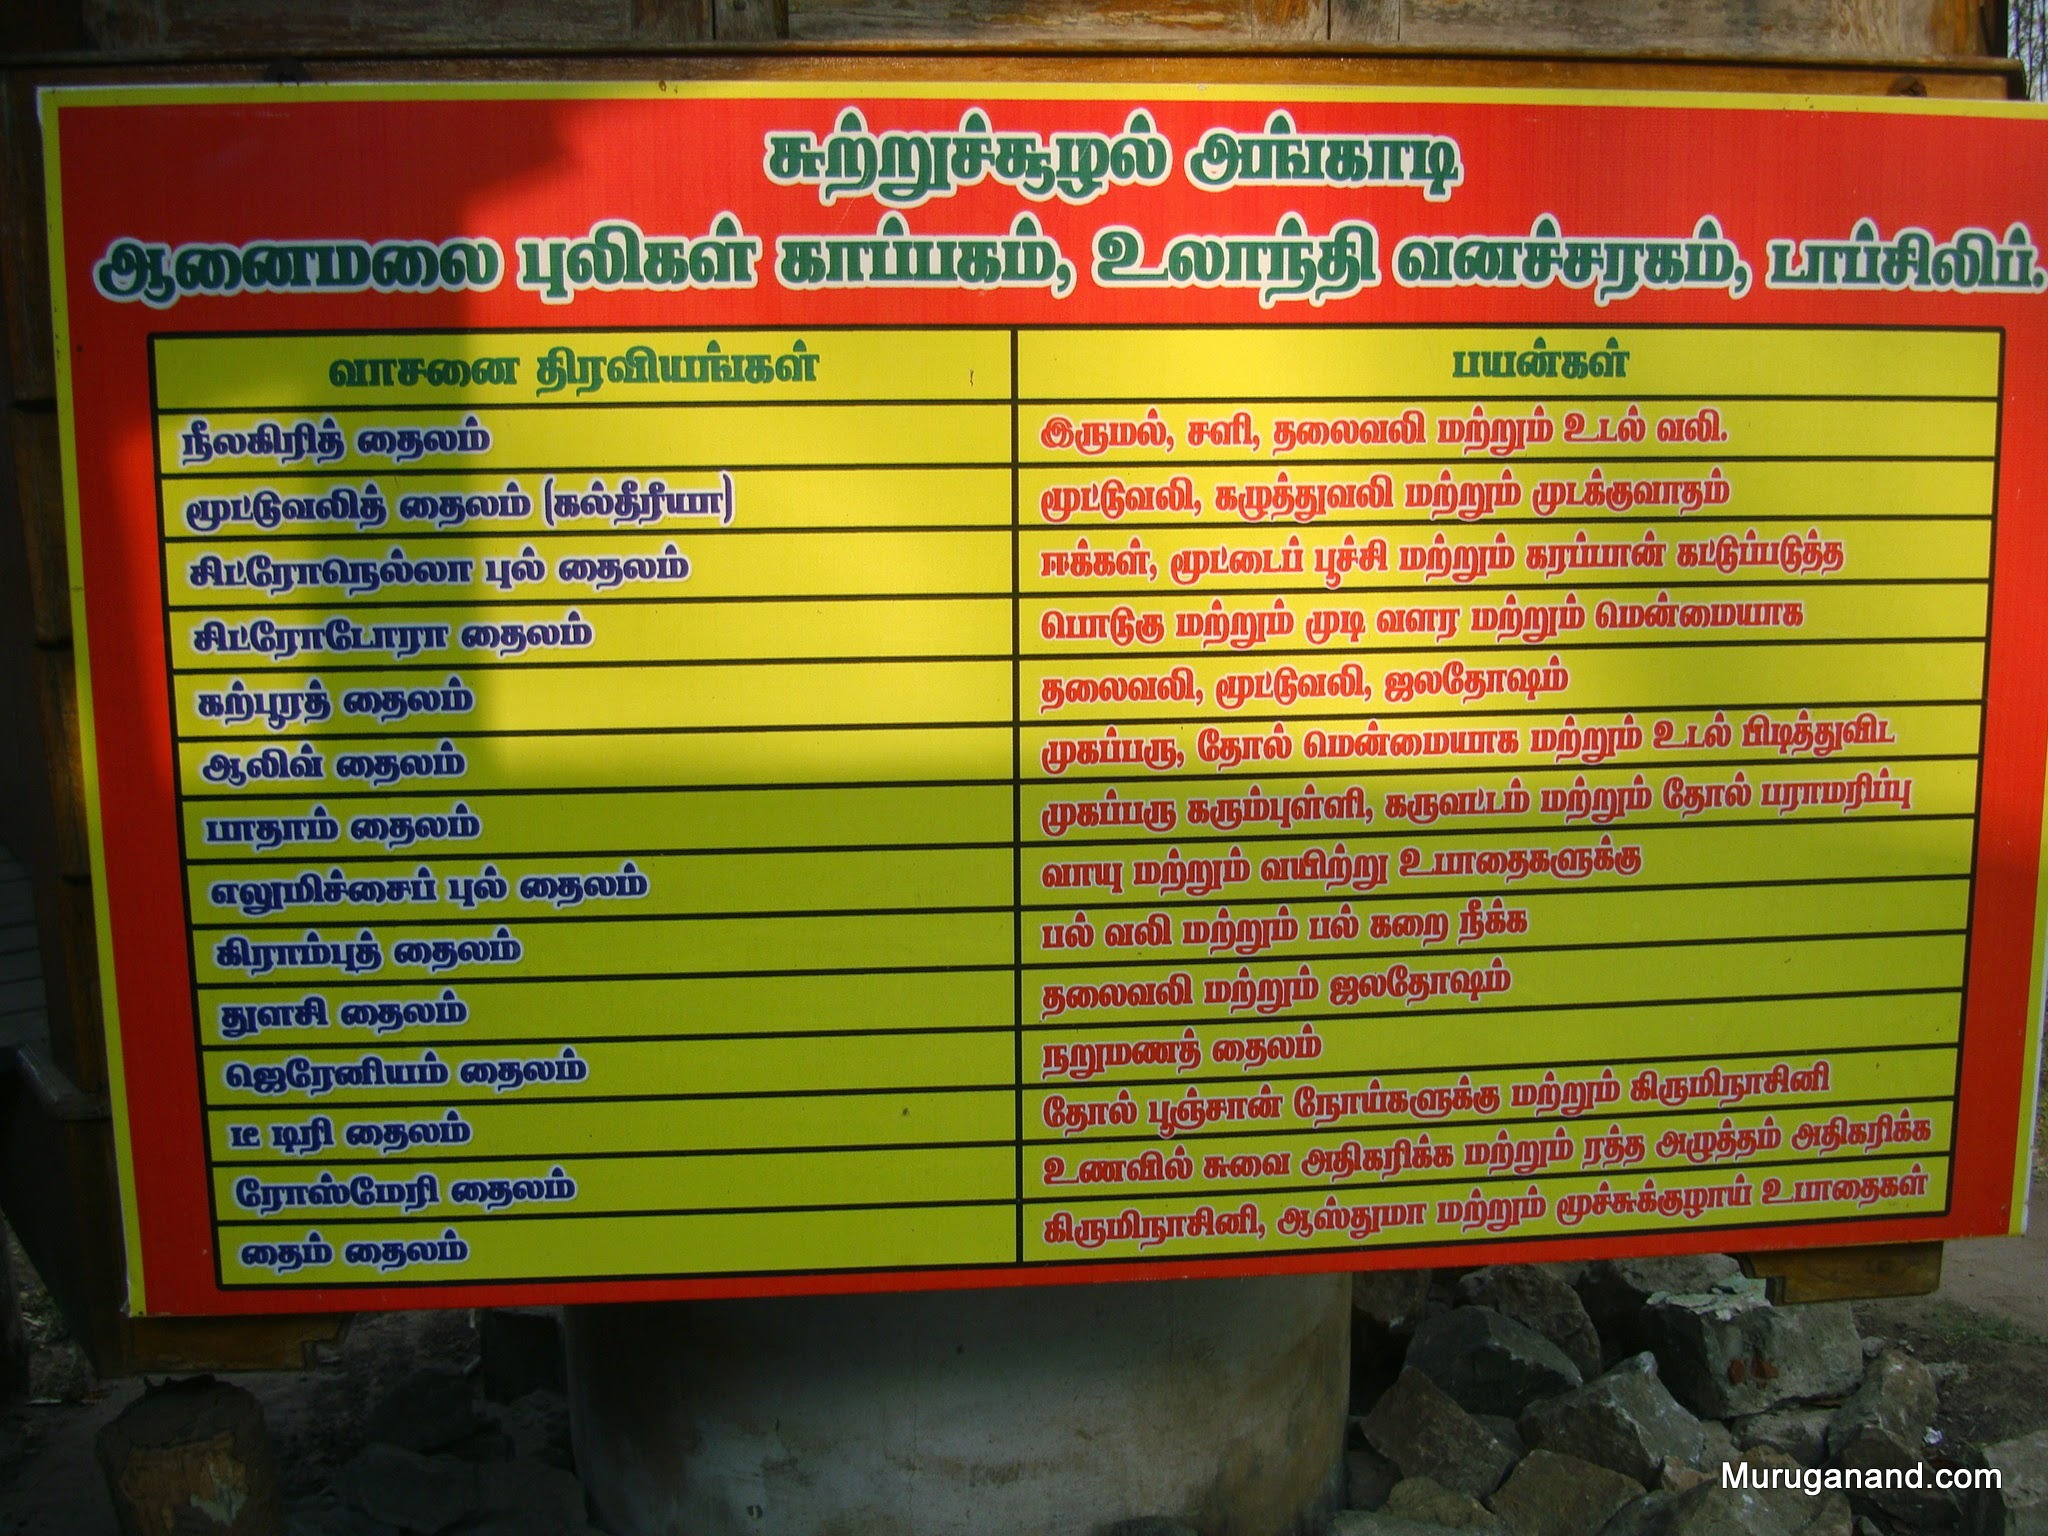 Tamil names for the oinmentsThere is herb shop but no souvenir shop!